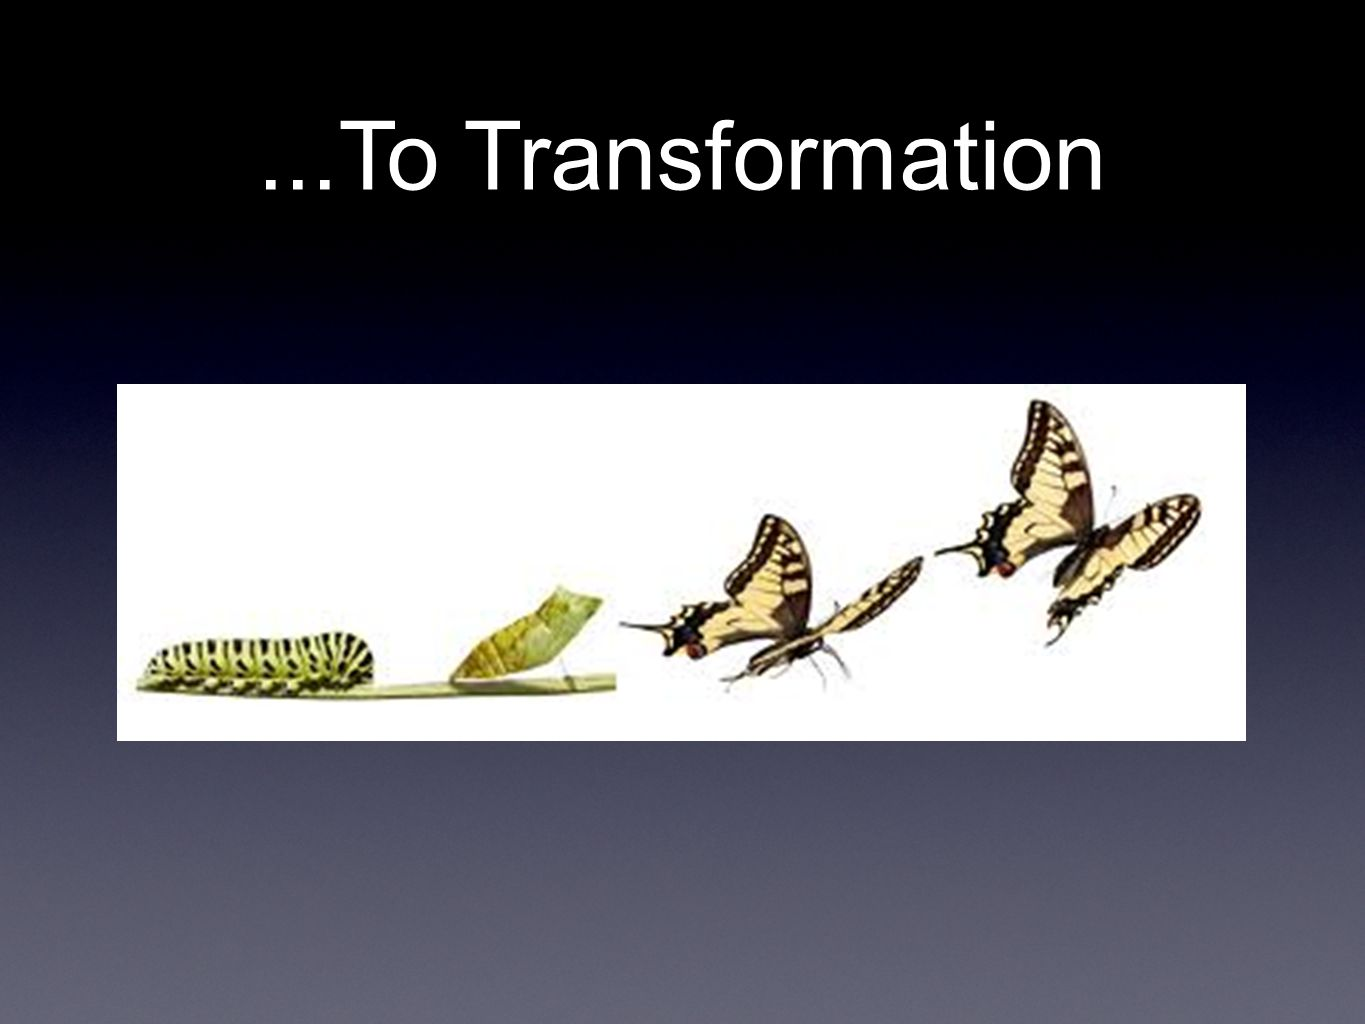 ...To Transformation